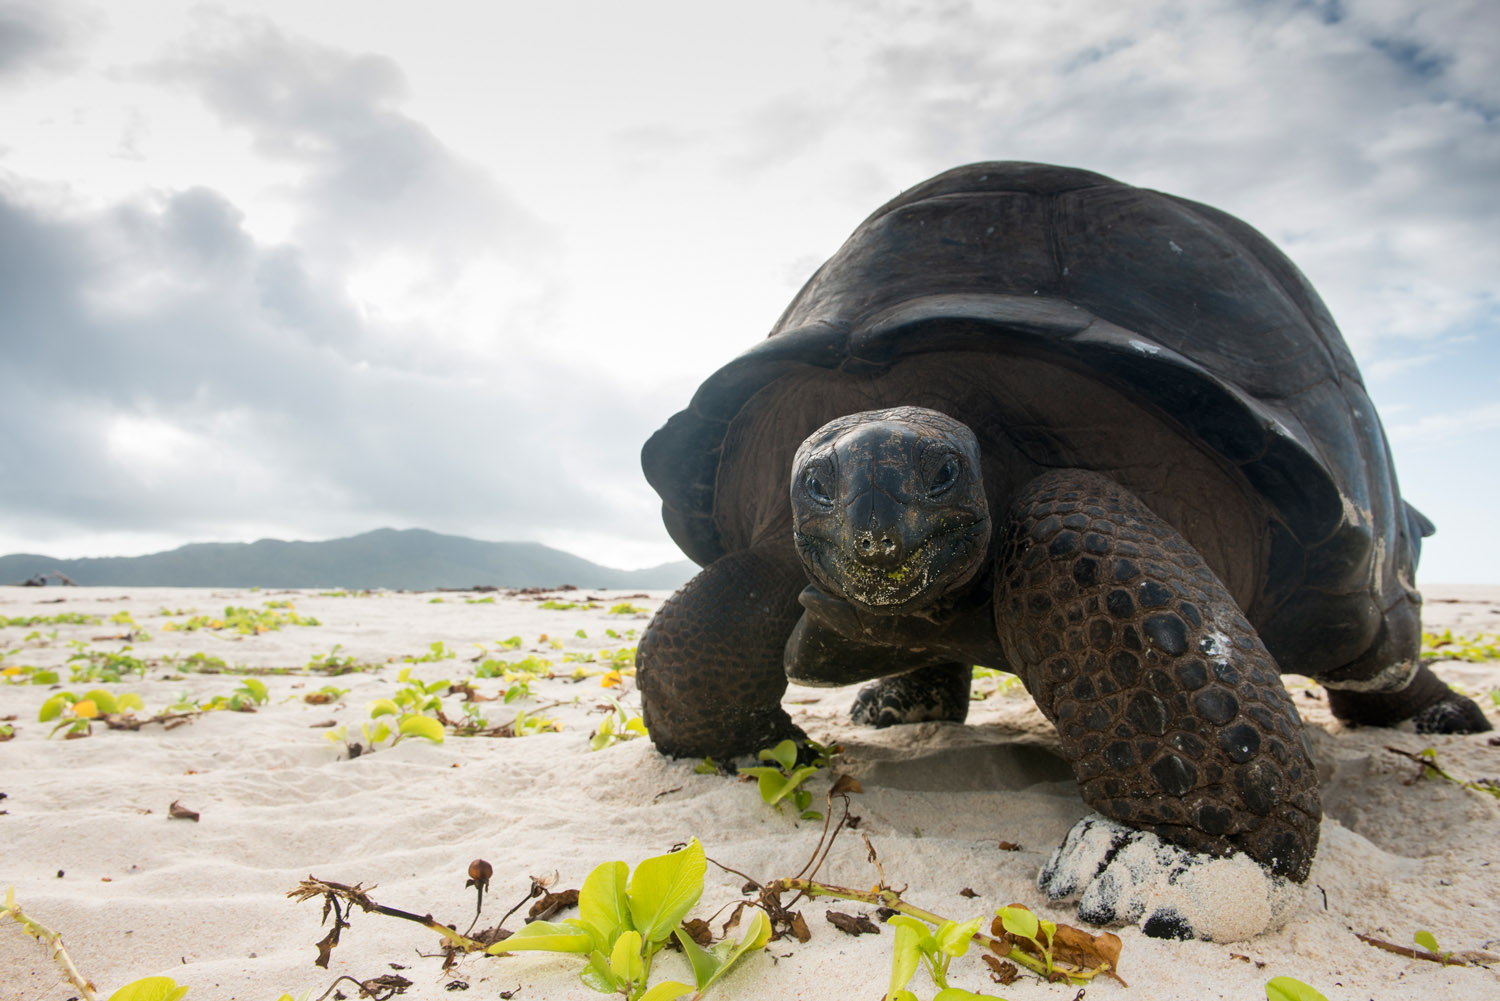 Aldabra giant tortoise on beach, Cousin Island Special Reserve, Seychelles